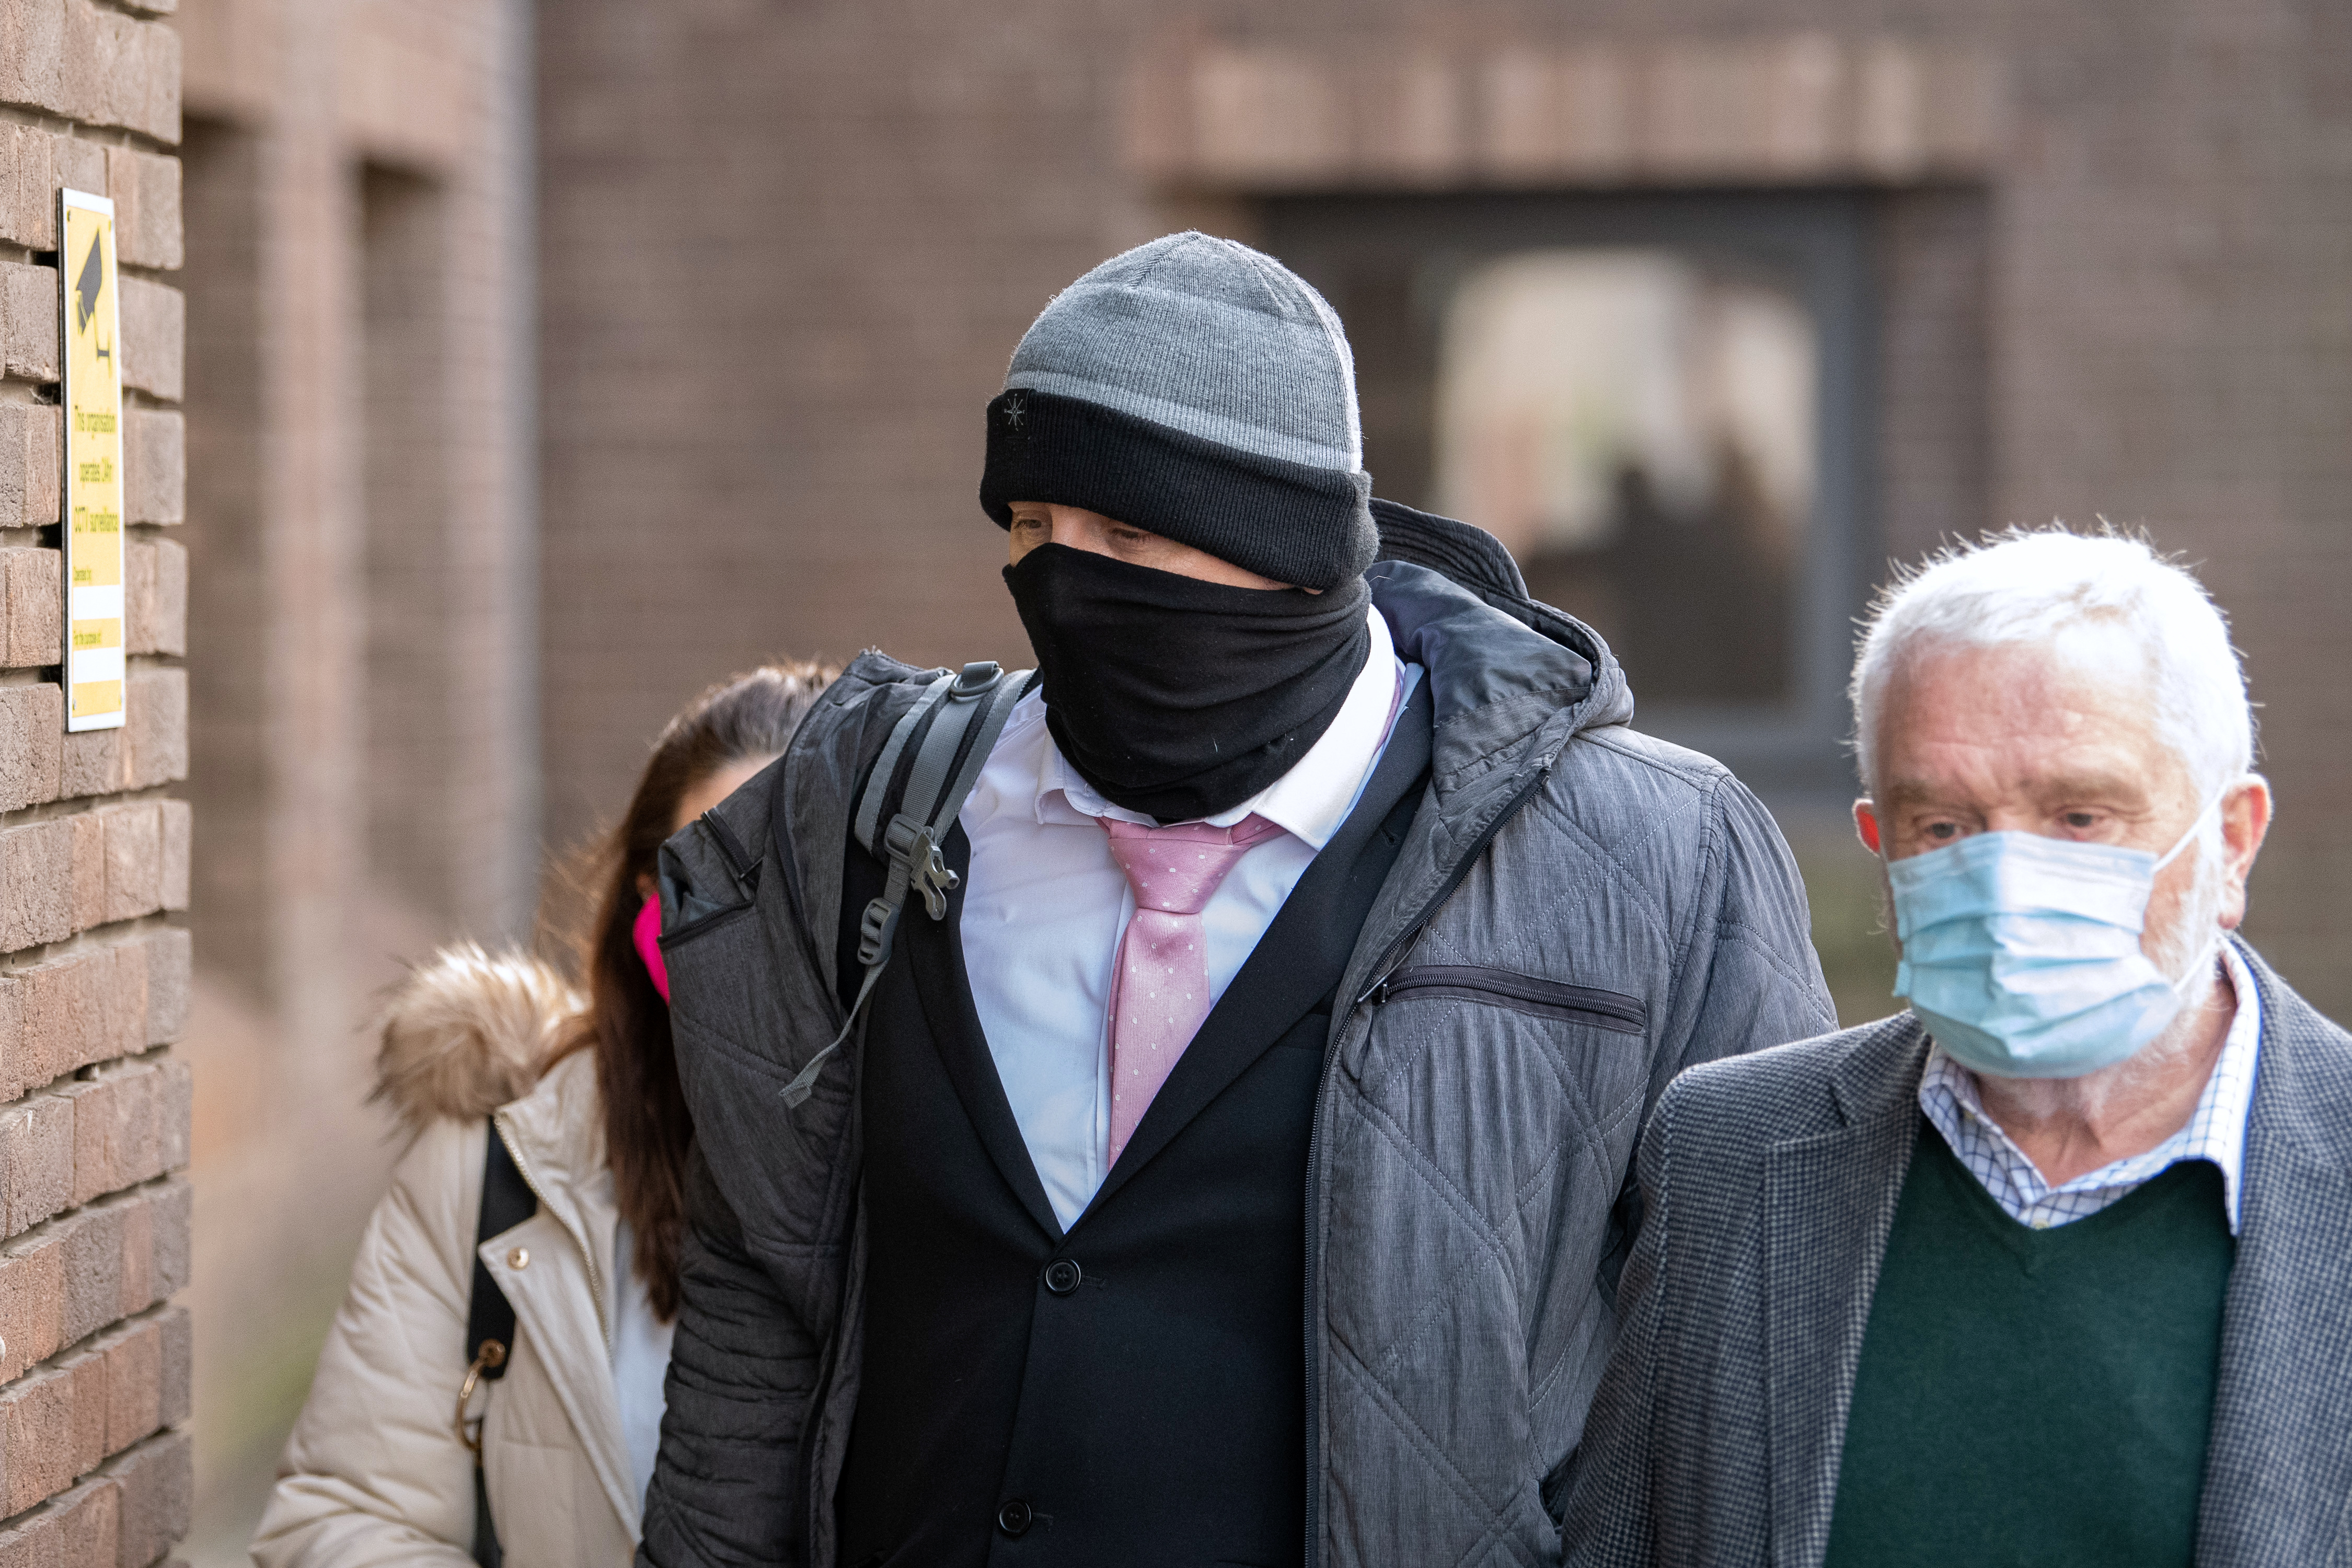 John Doak, 37, (centre) arrives at Chelmsford Crown Court in Essex for sentencing. (PA Images)